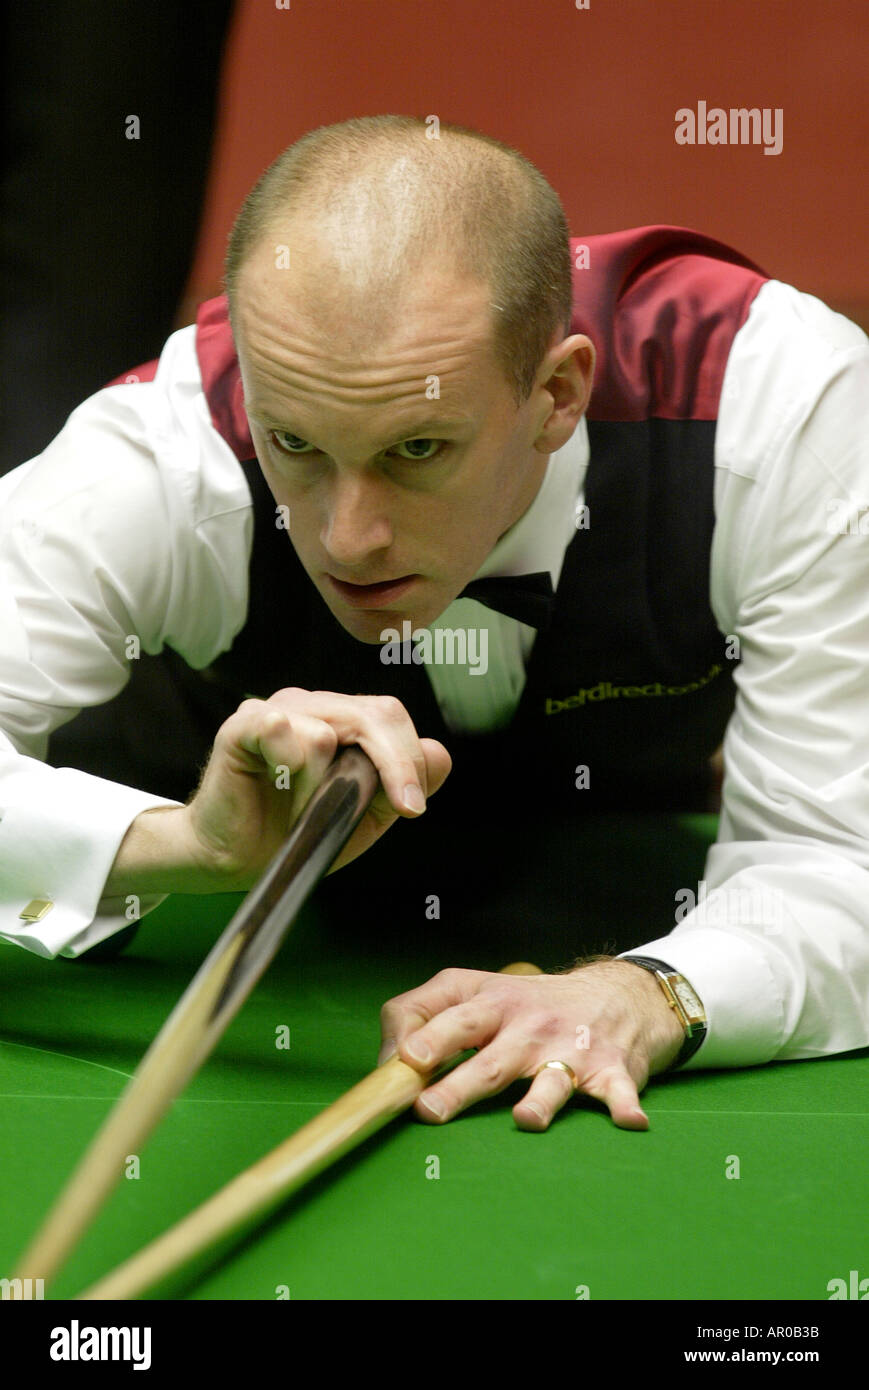 Peter Ebdon playing in the 2004 World Snooker Championships at the Crucible Theatre Sheffield - Stock Image